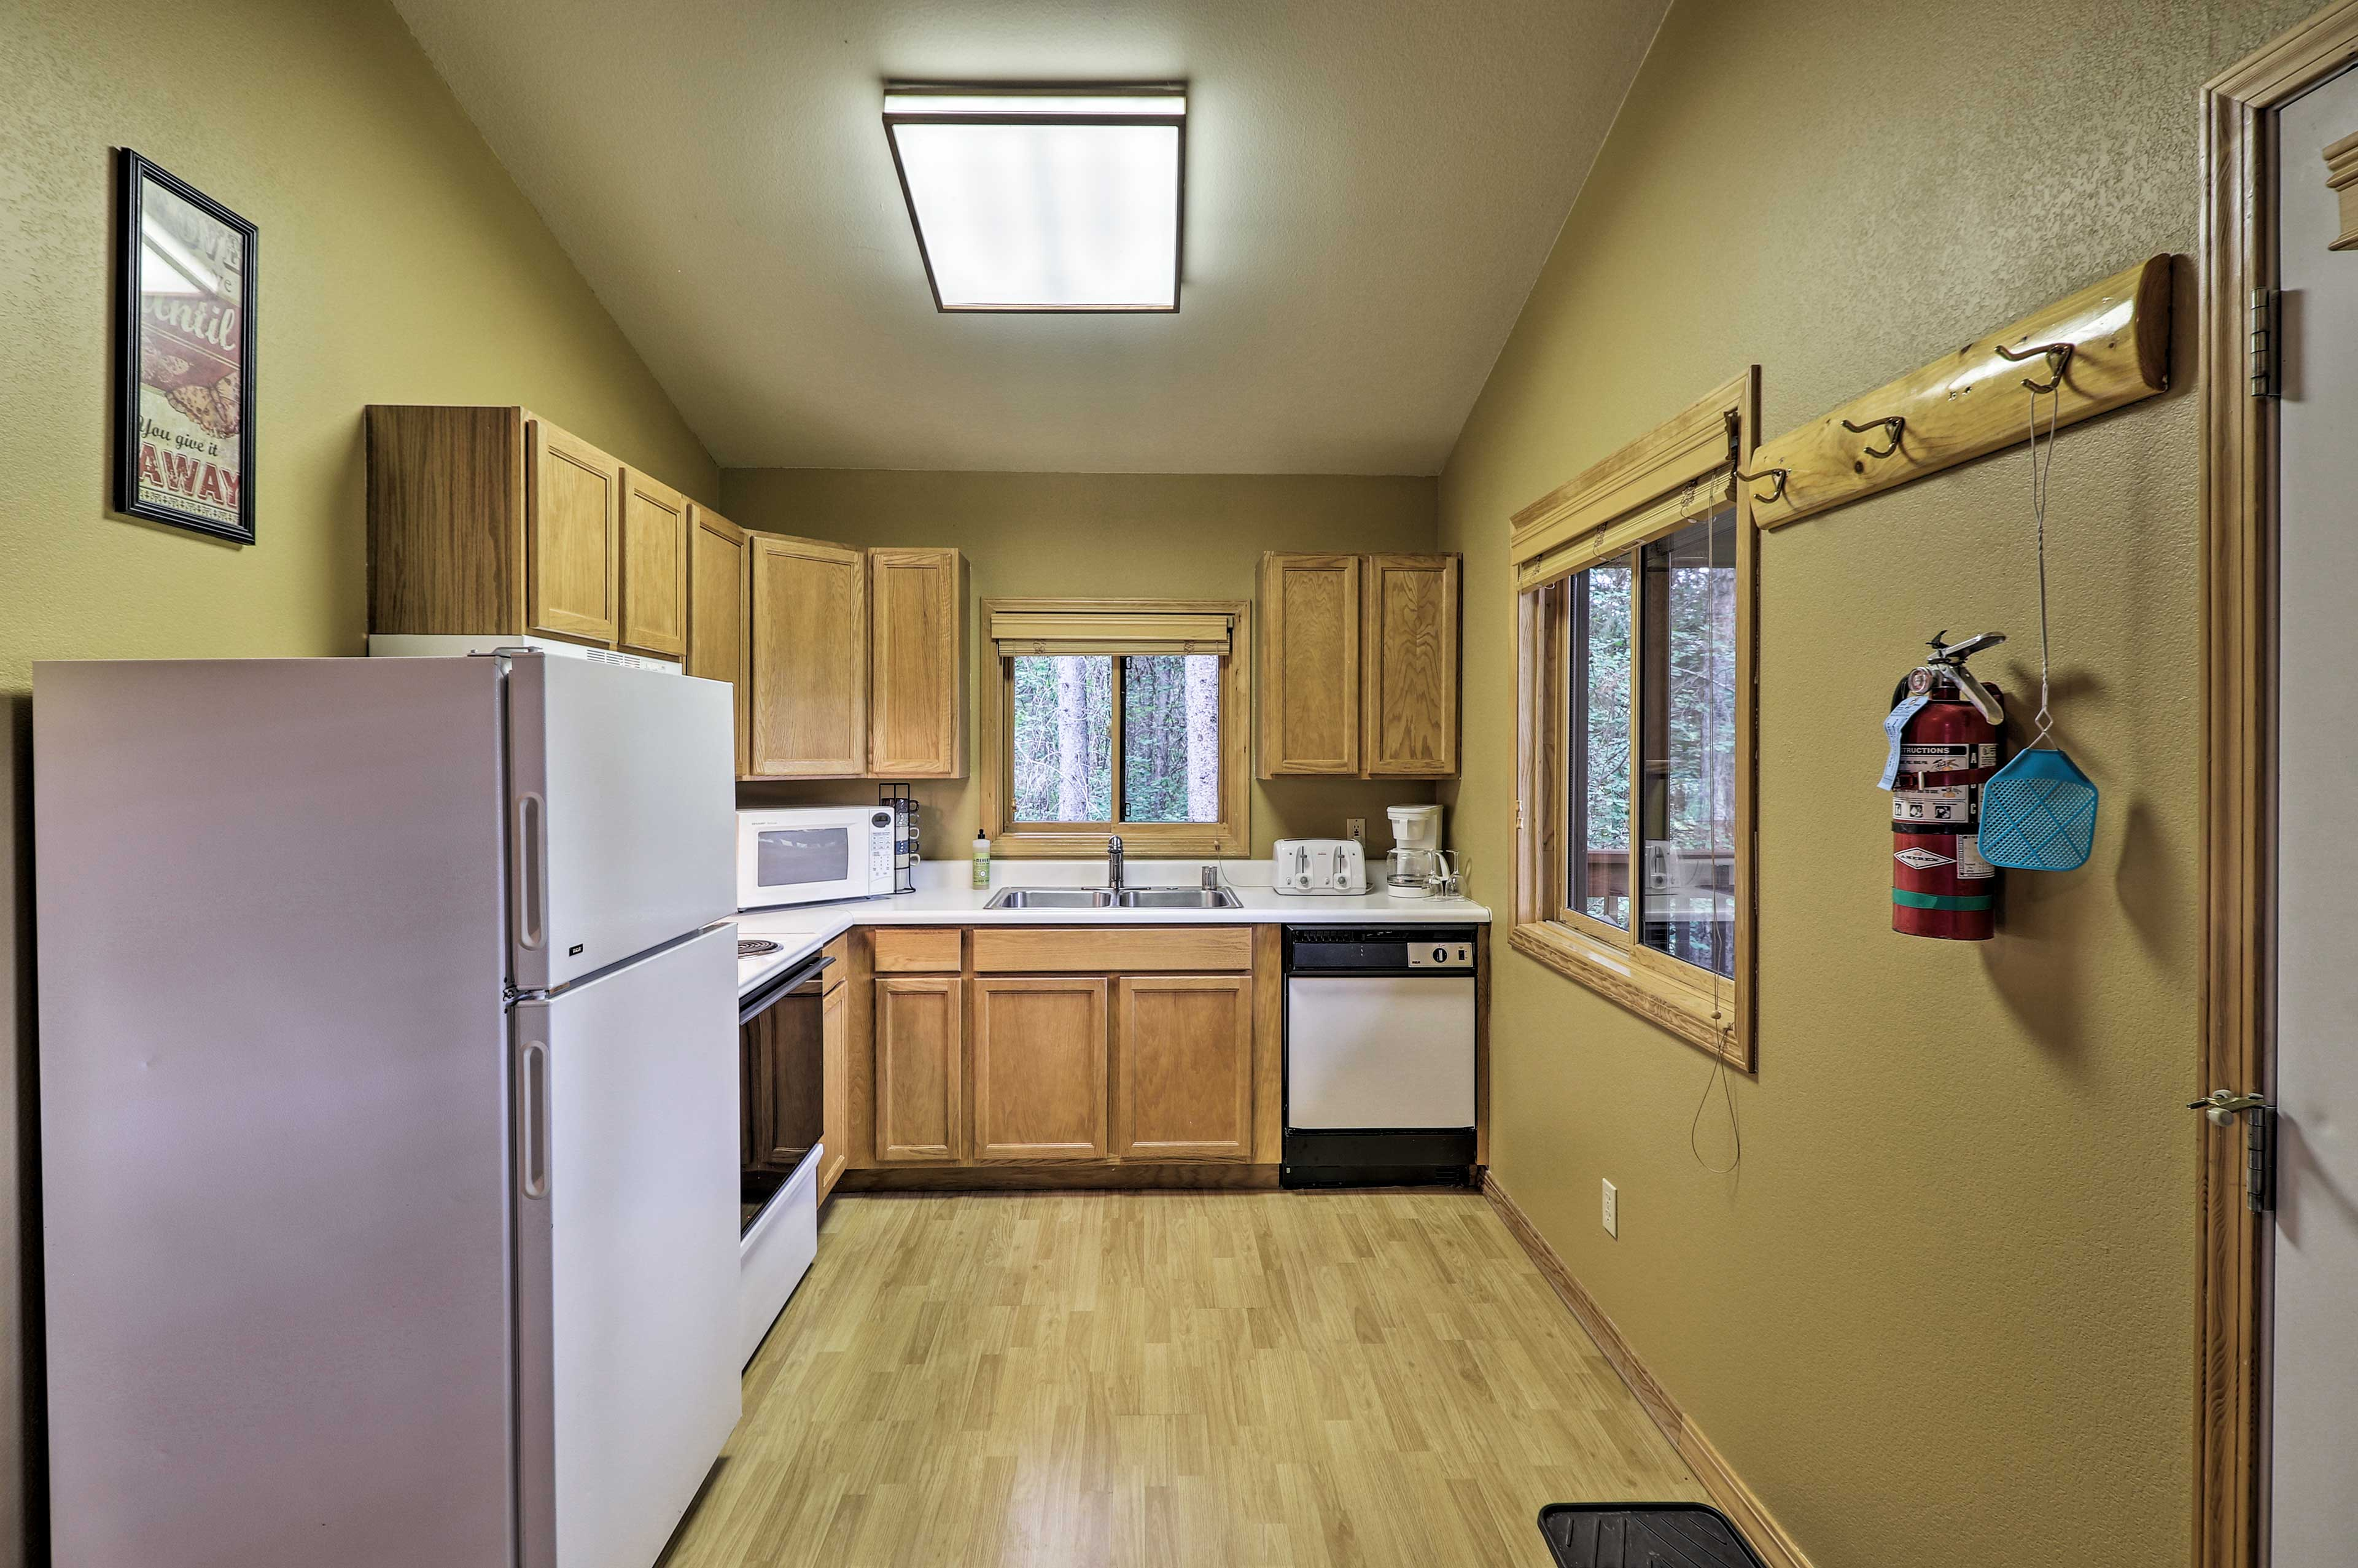 Prepare home-cooked favorites in the fully equipped kitchen.